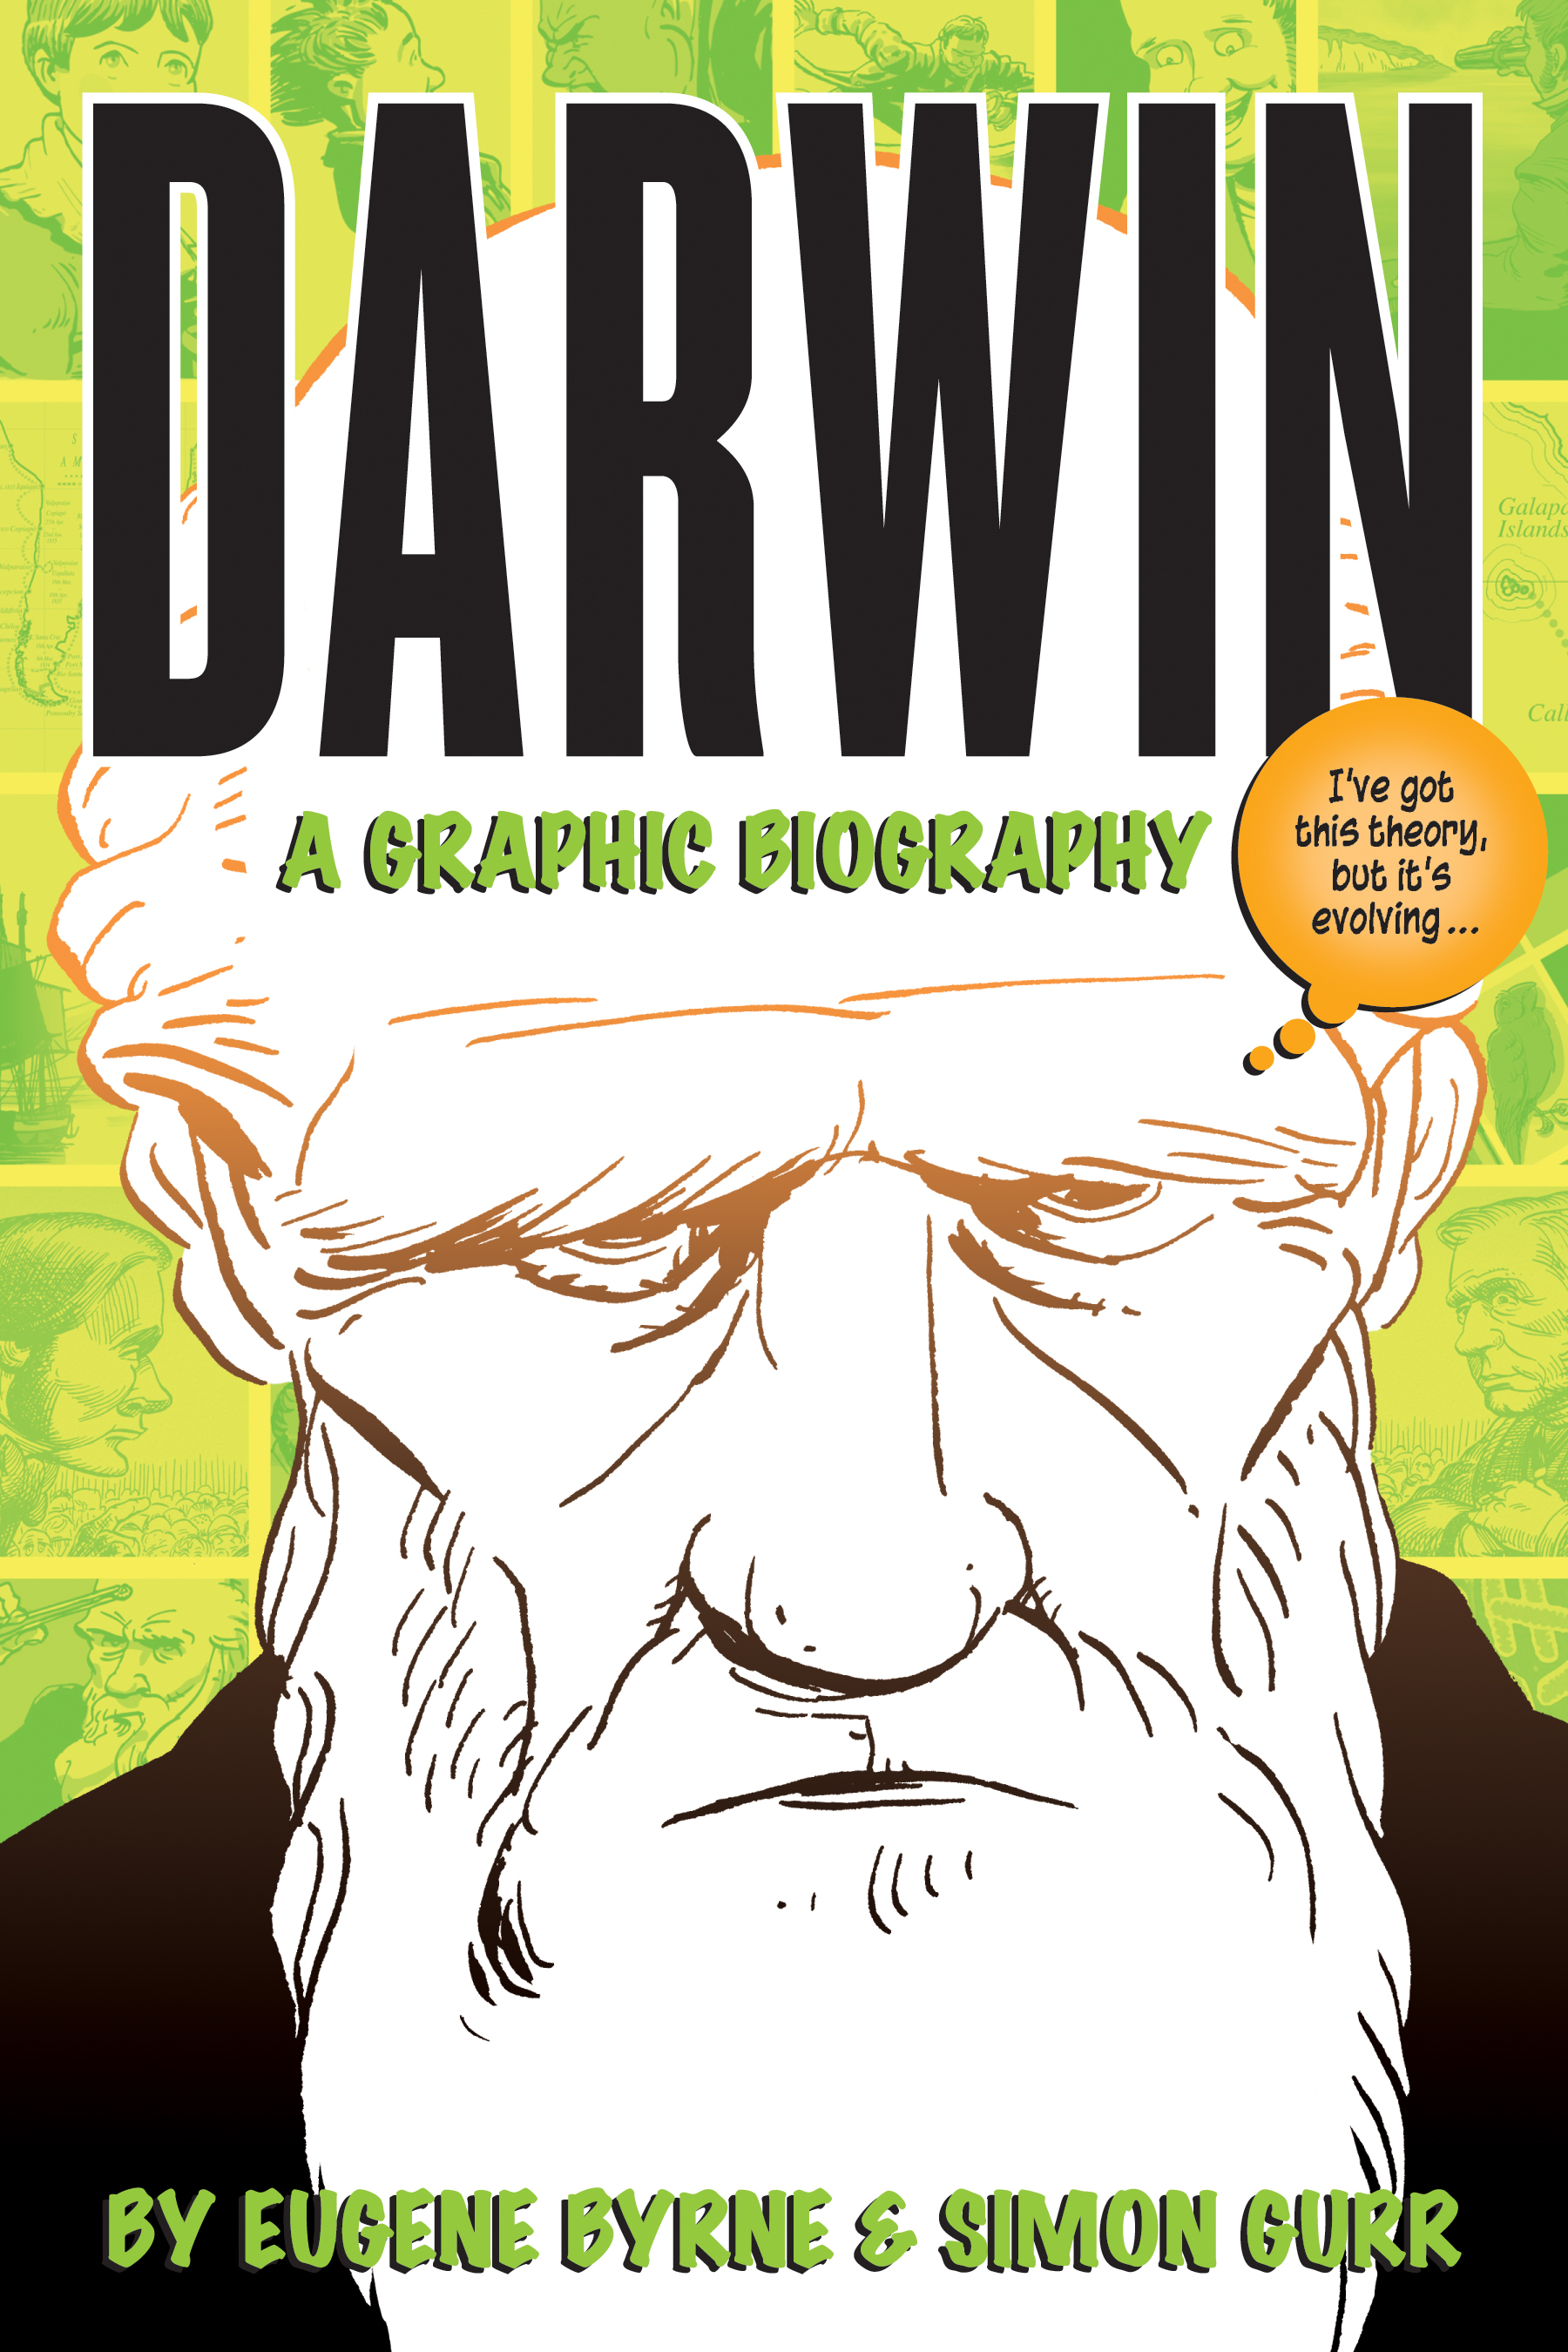 Smithsonian Books Releases Graphic Novel Style Biography